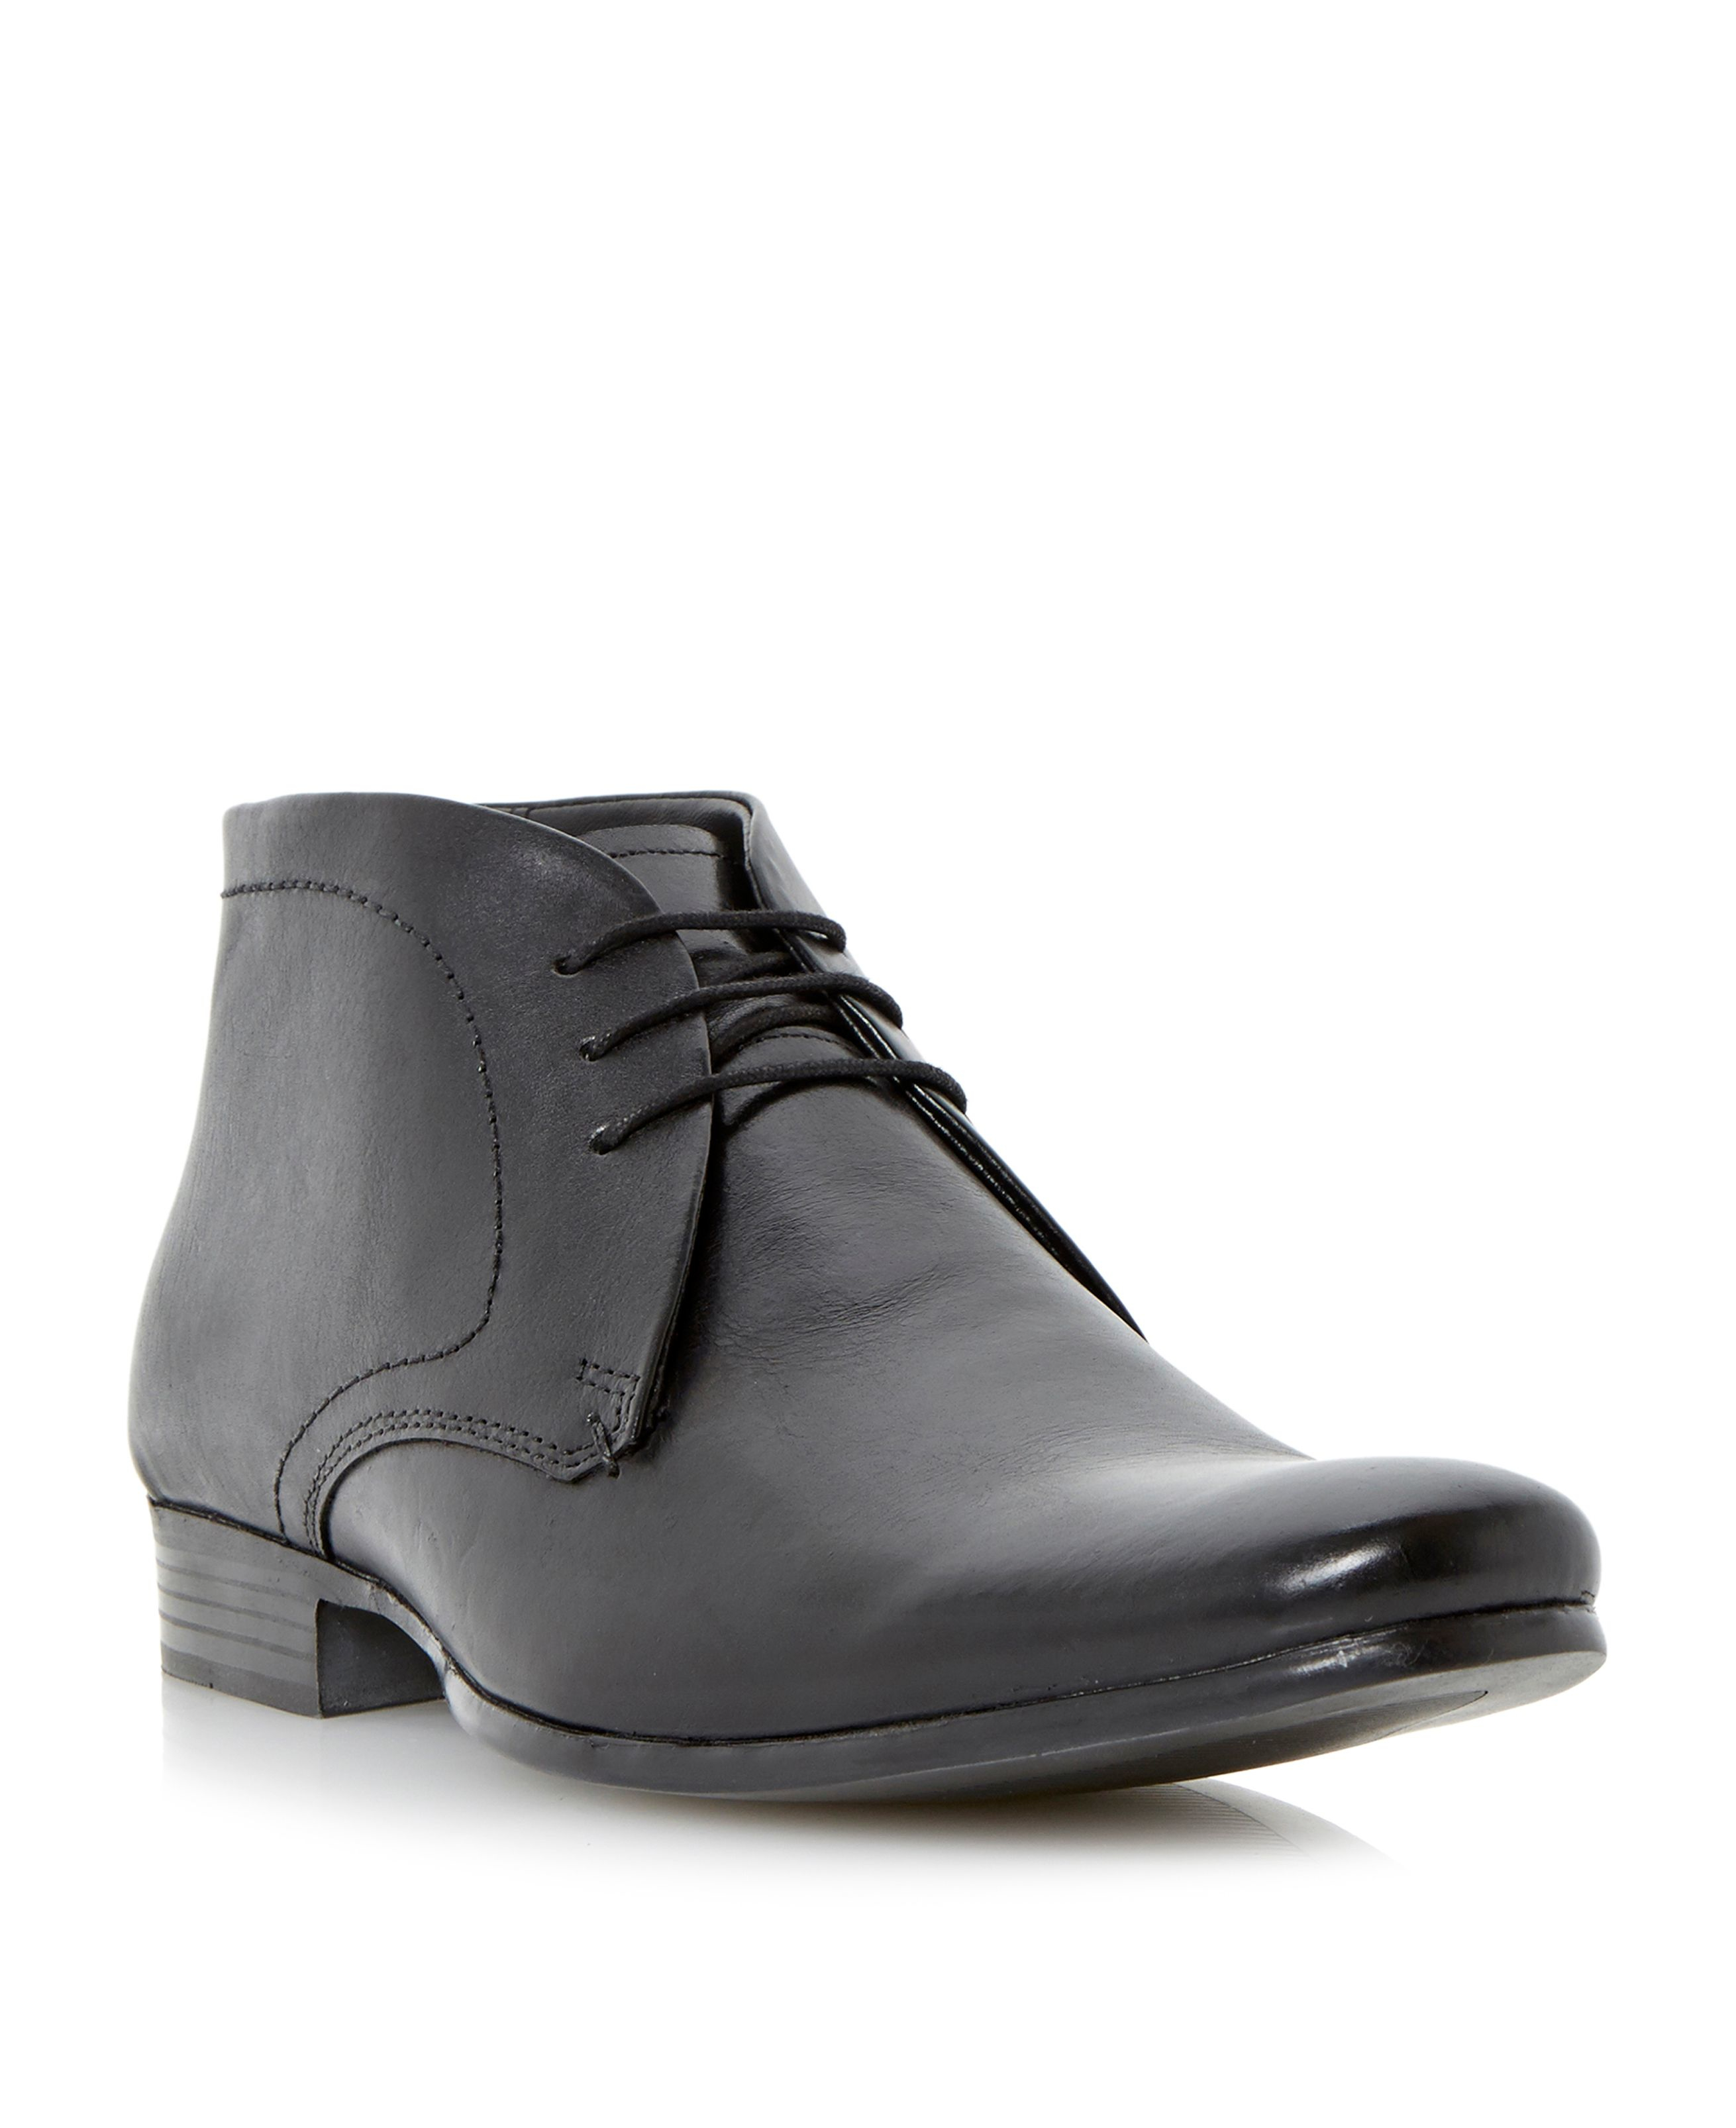 howick lace up casual desert boots in black for men lyst